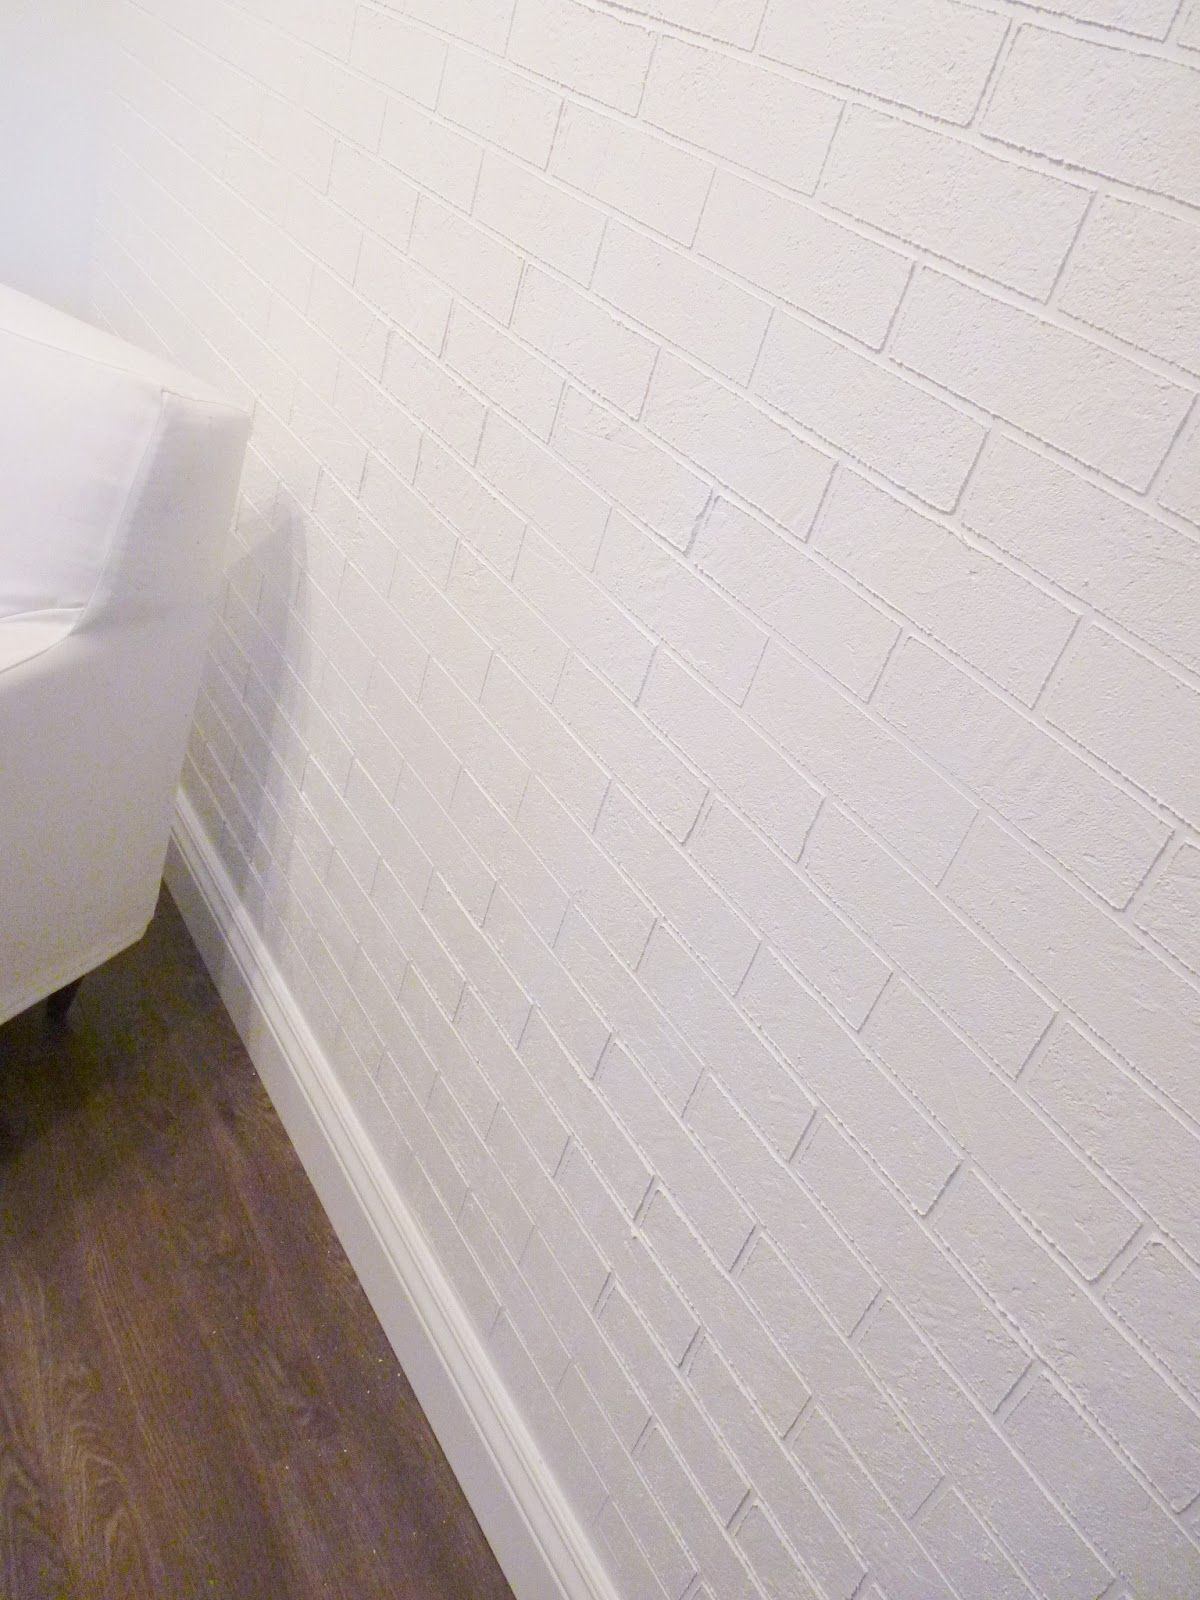 How To Make A Faux Exposed Brick Wall